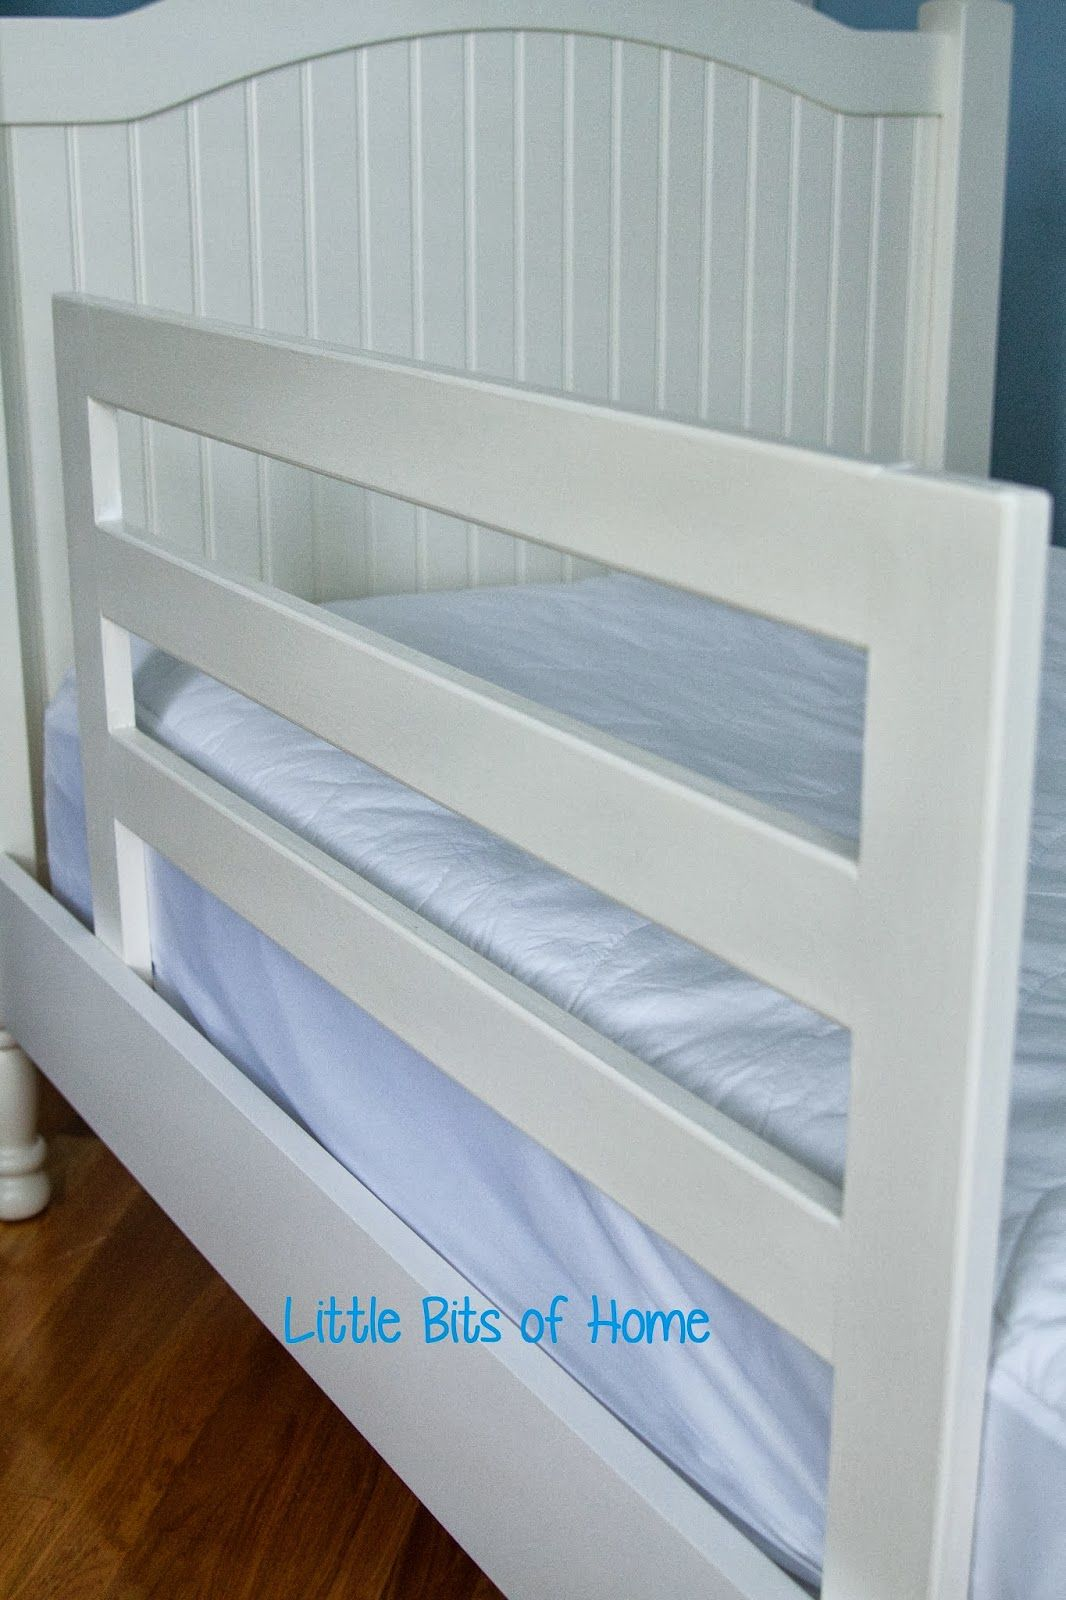 little bits of home pottery barn knock off bed rails. Black Bedroom Furniture Sets. Home Design Ideas